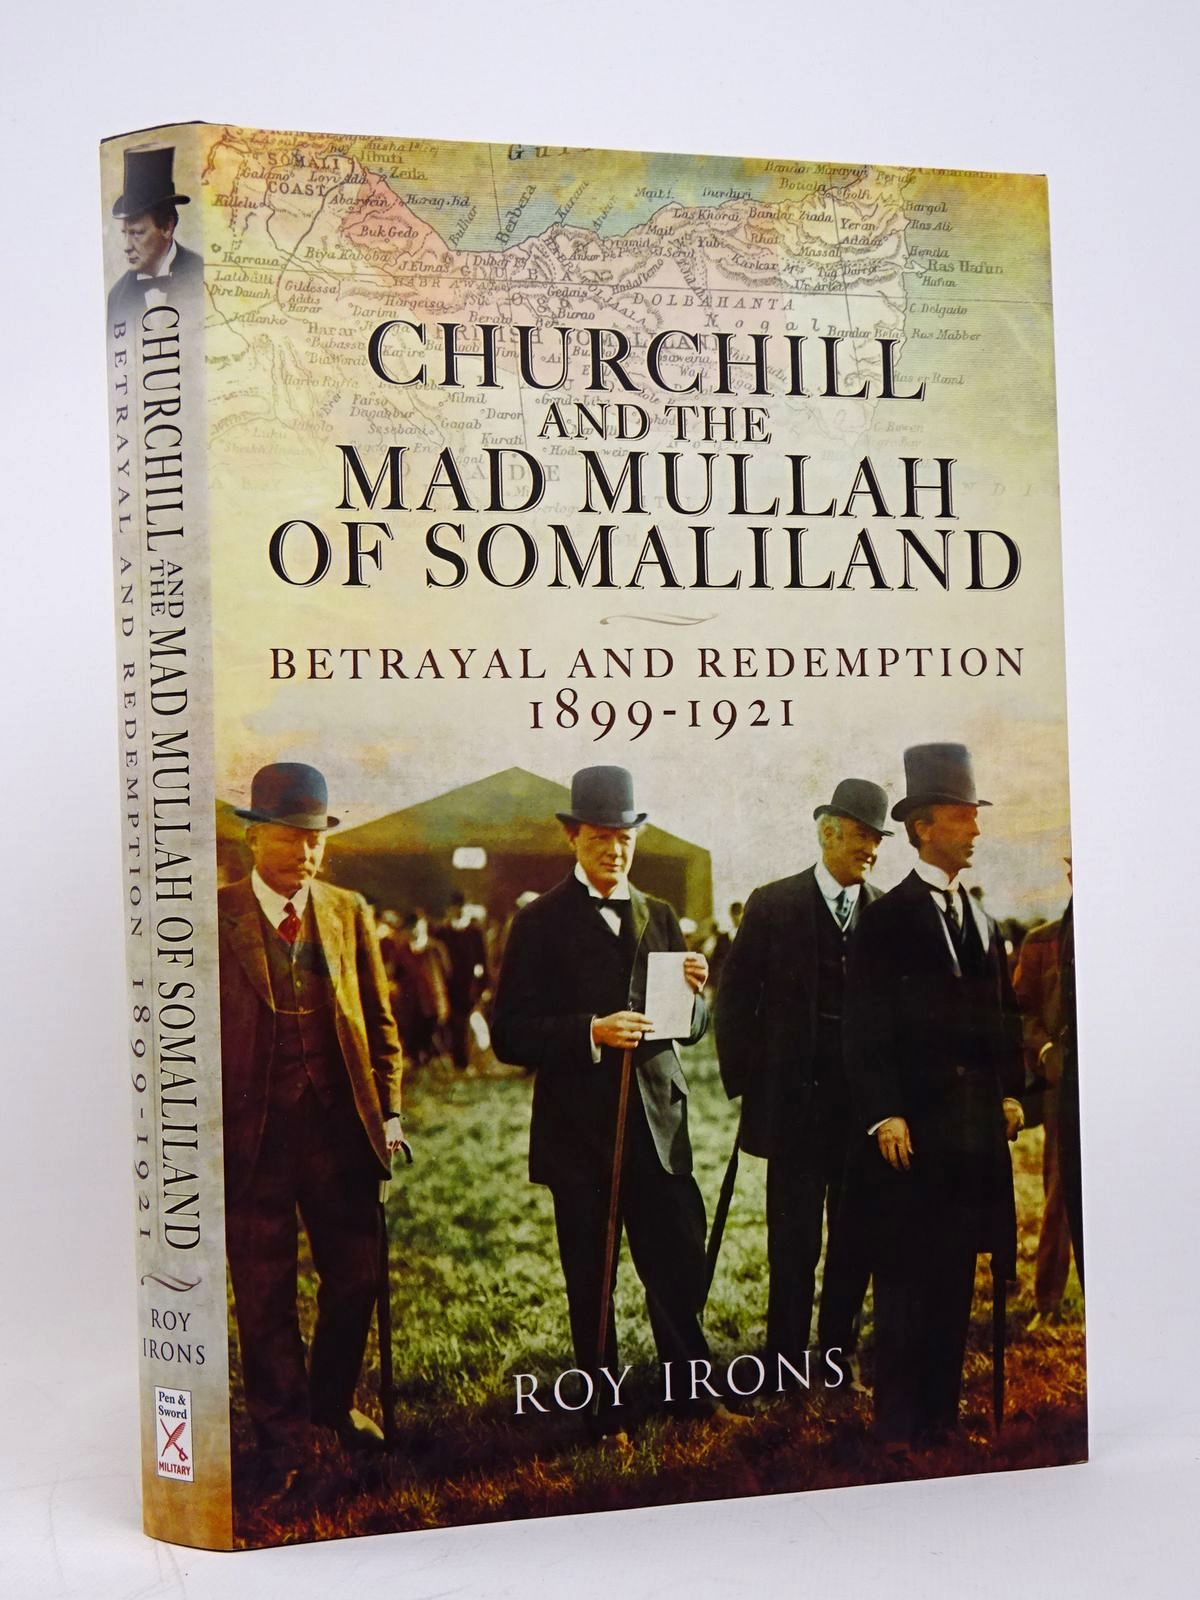 Photo of CHURCHILL AND THE MAD MULLAH OF SOMALILAND: BETRAYAL AND REDEMPTION 1899-1921 written by Irons, Roy published by Pen & Sword Military (STOCK CODE: 1817821)  for sale by Stella & Rose's Books